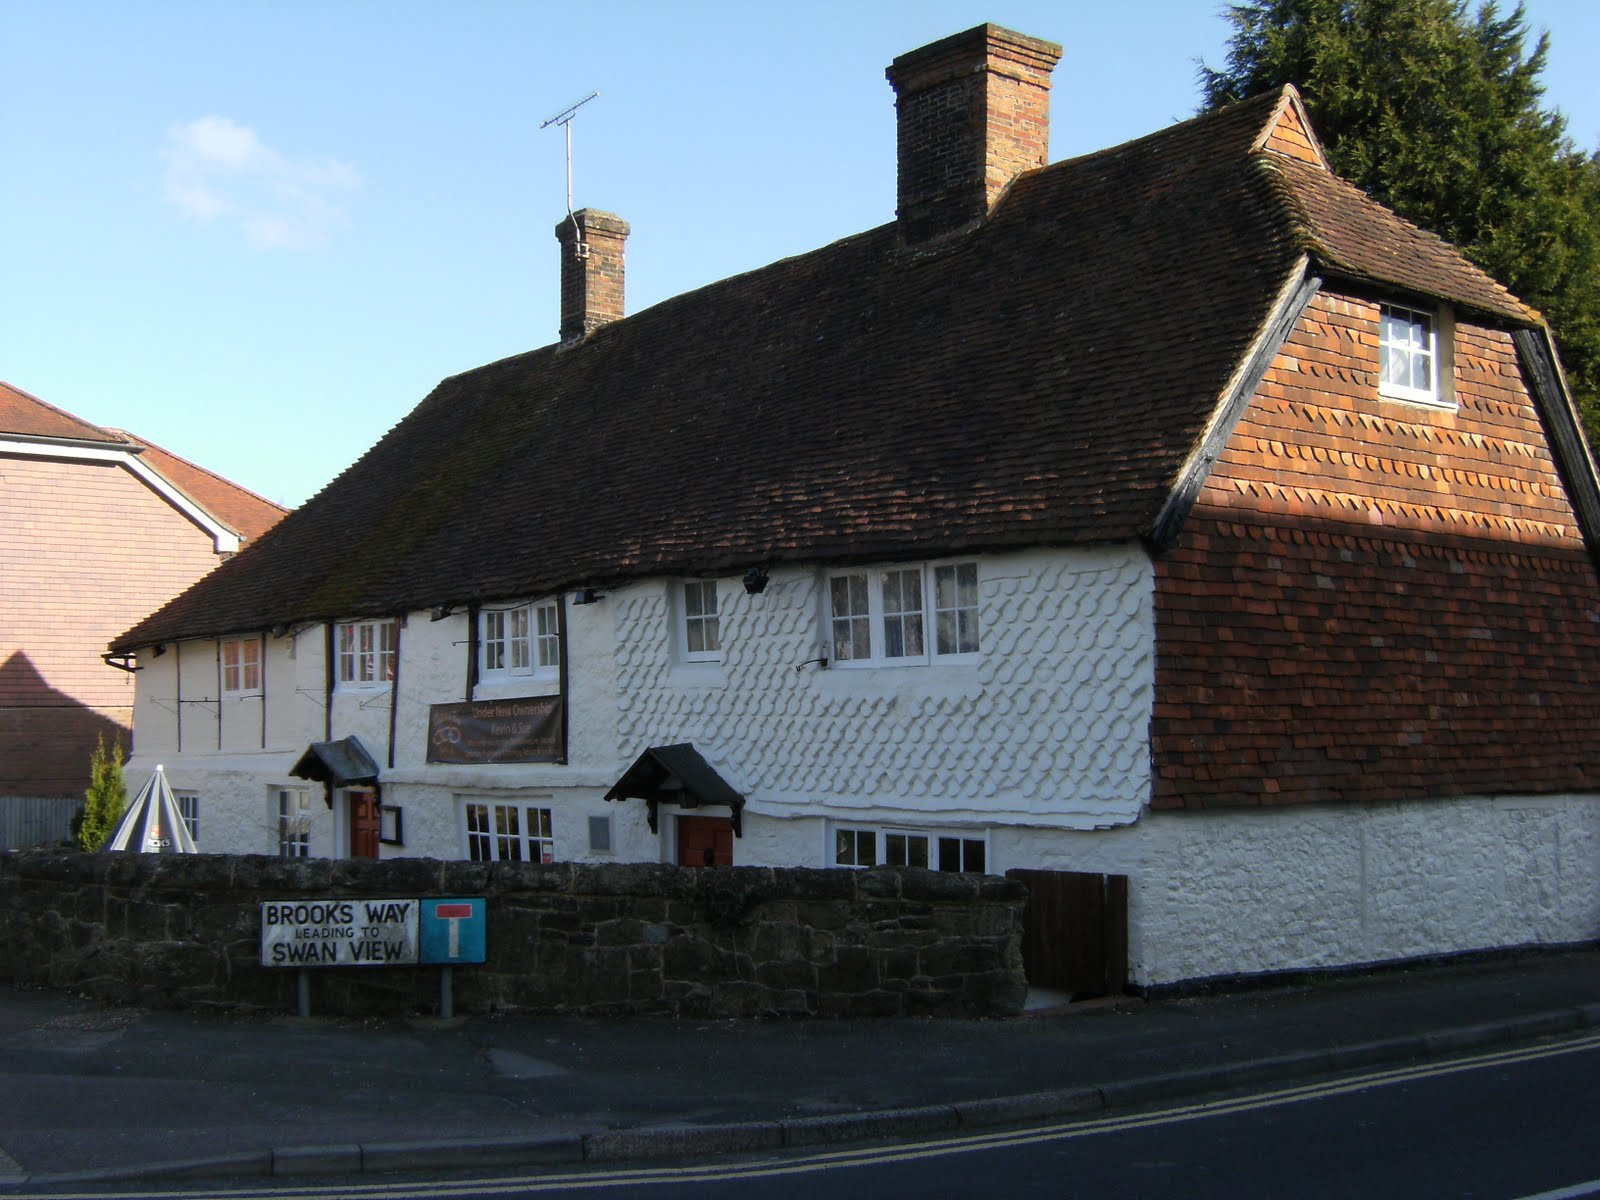 1004050043 Oddfellows Arms, Pulborough